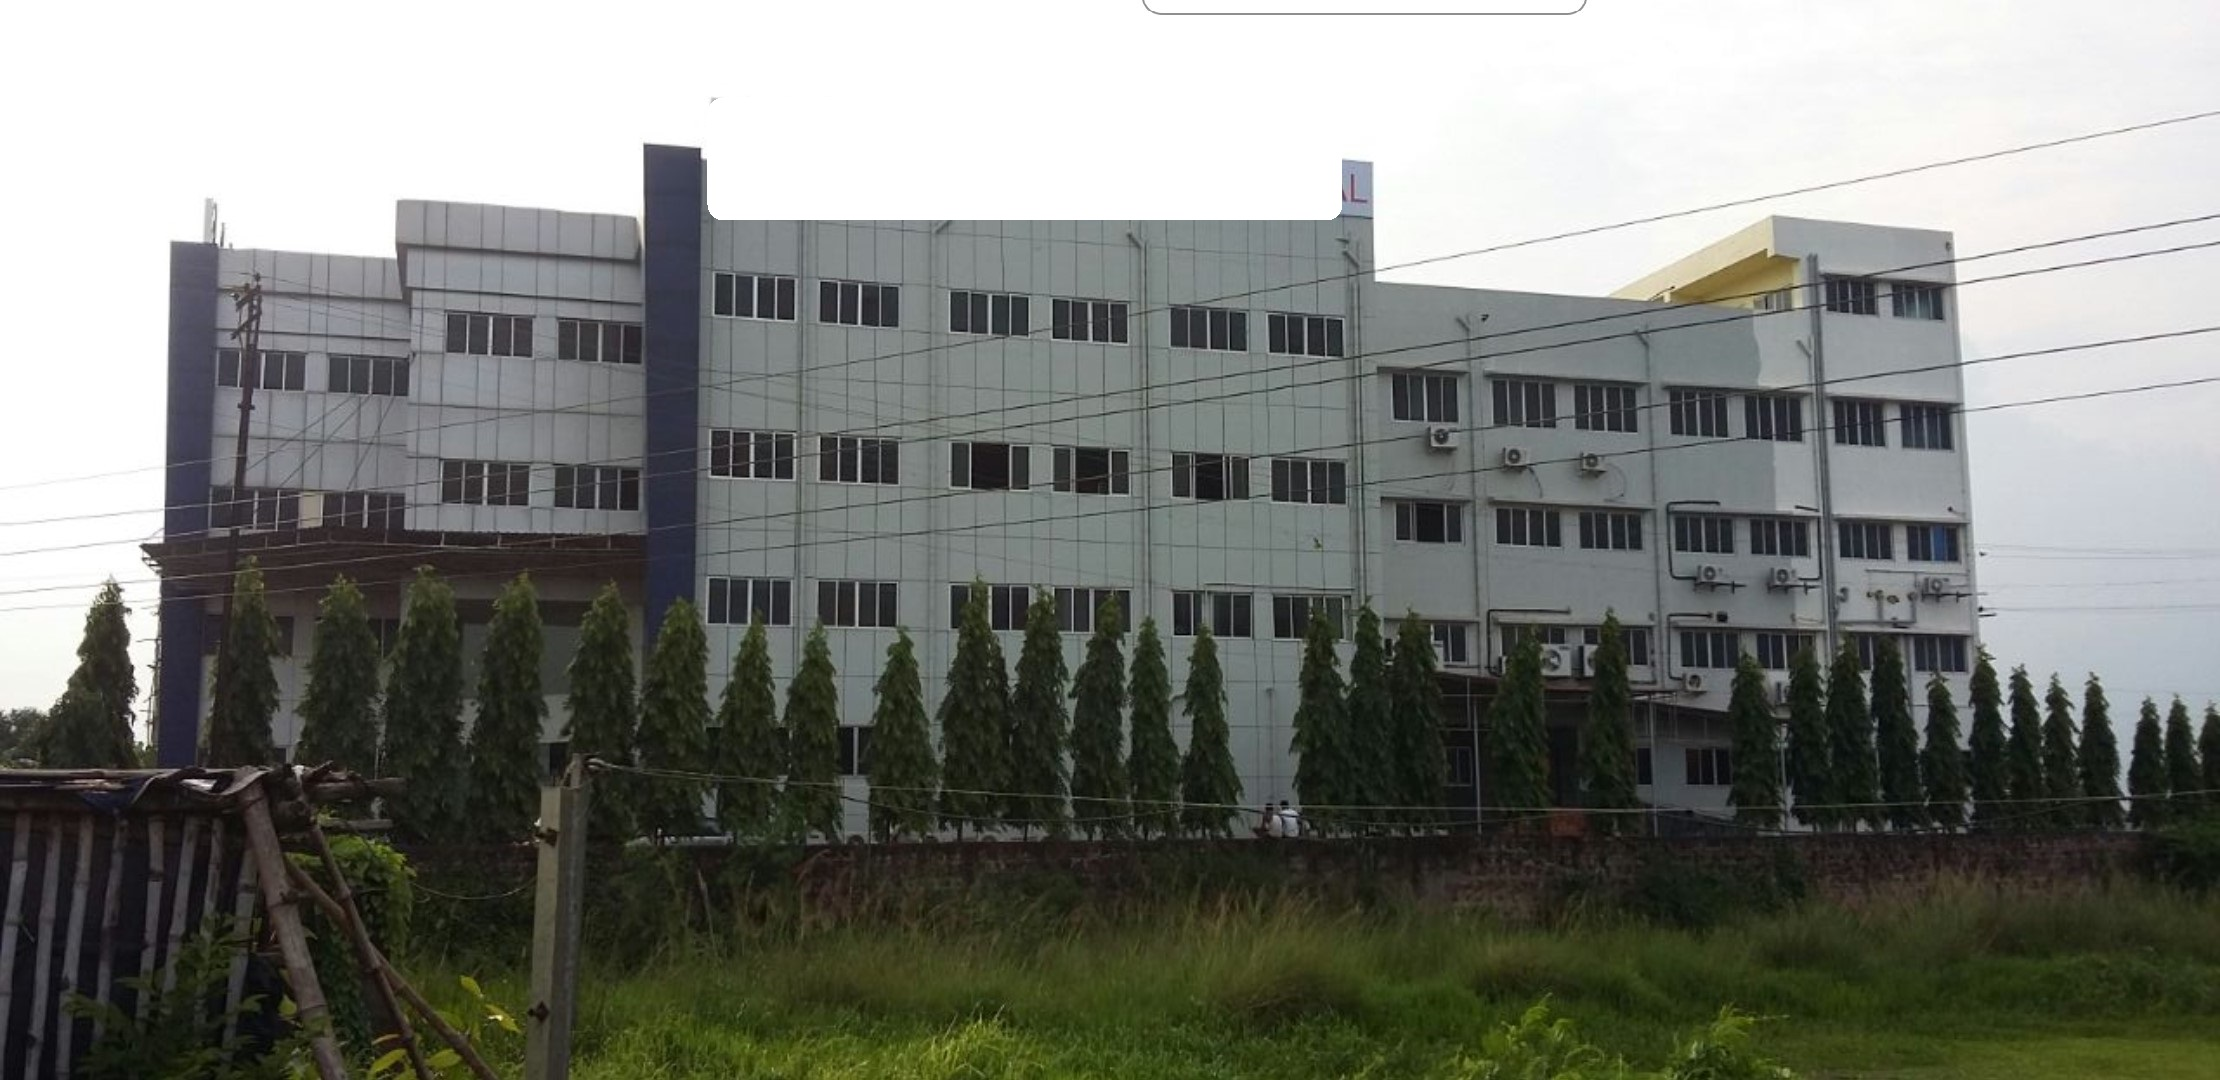 250 Bedded Hospital for Sale in Midnapore, West Bengal